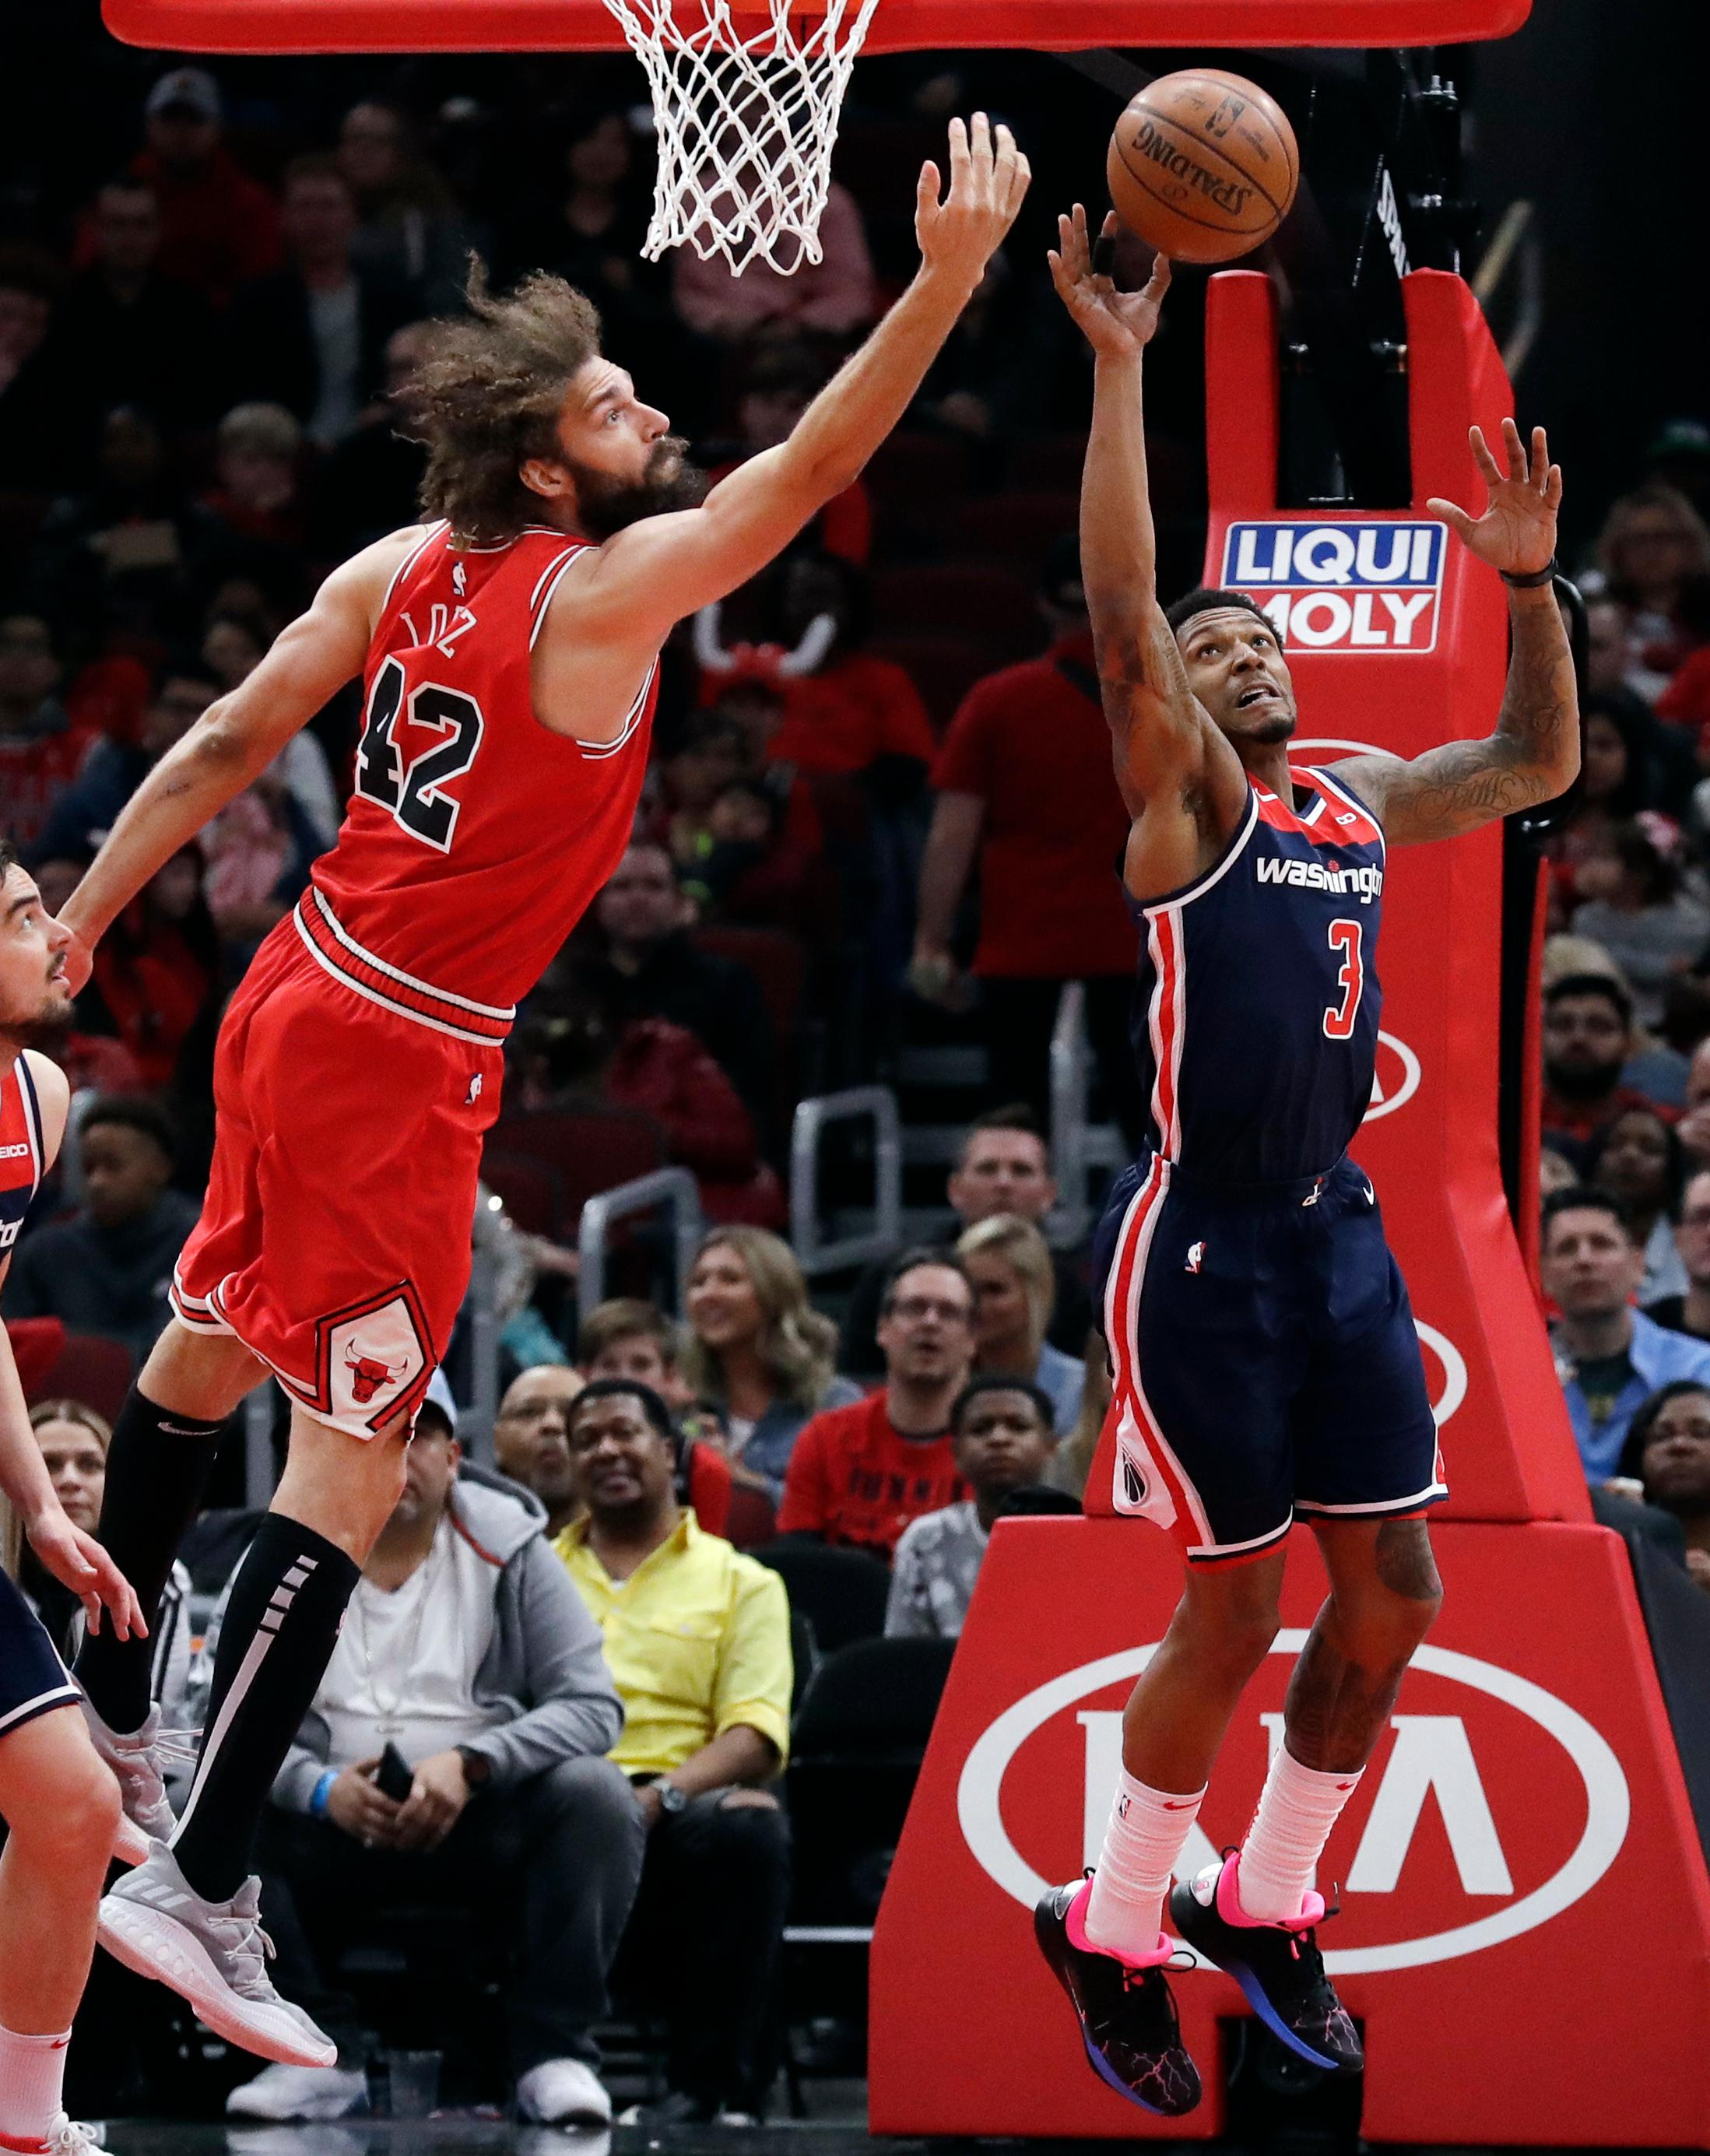 Washington Wizards guard Bradley Beal, right, and Chicago Bulls center Robin Lopez reach for a rebound during the first half of an NBA basketball game Wednesday, March 20, 2019, in Chicago. (AP Photo/Nam Y. Huh)